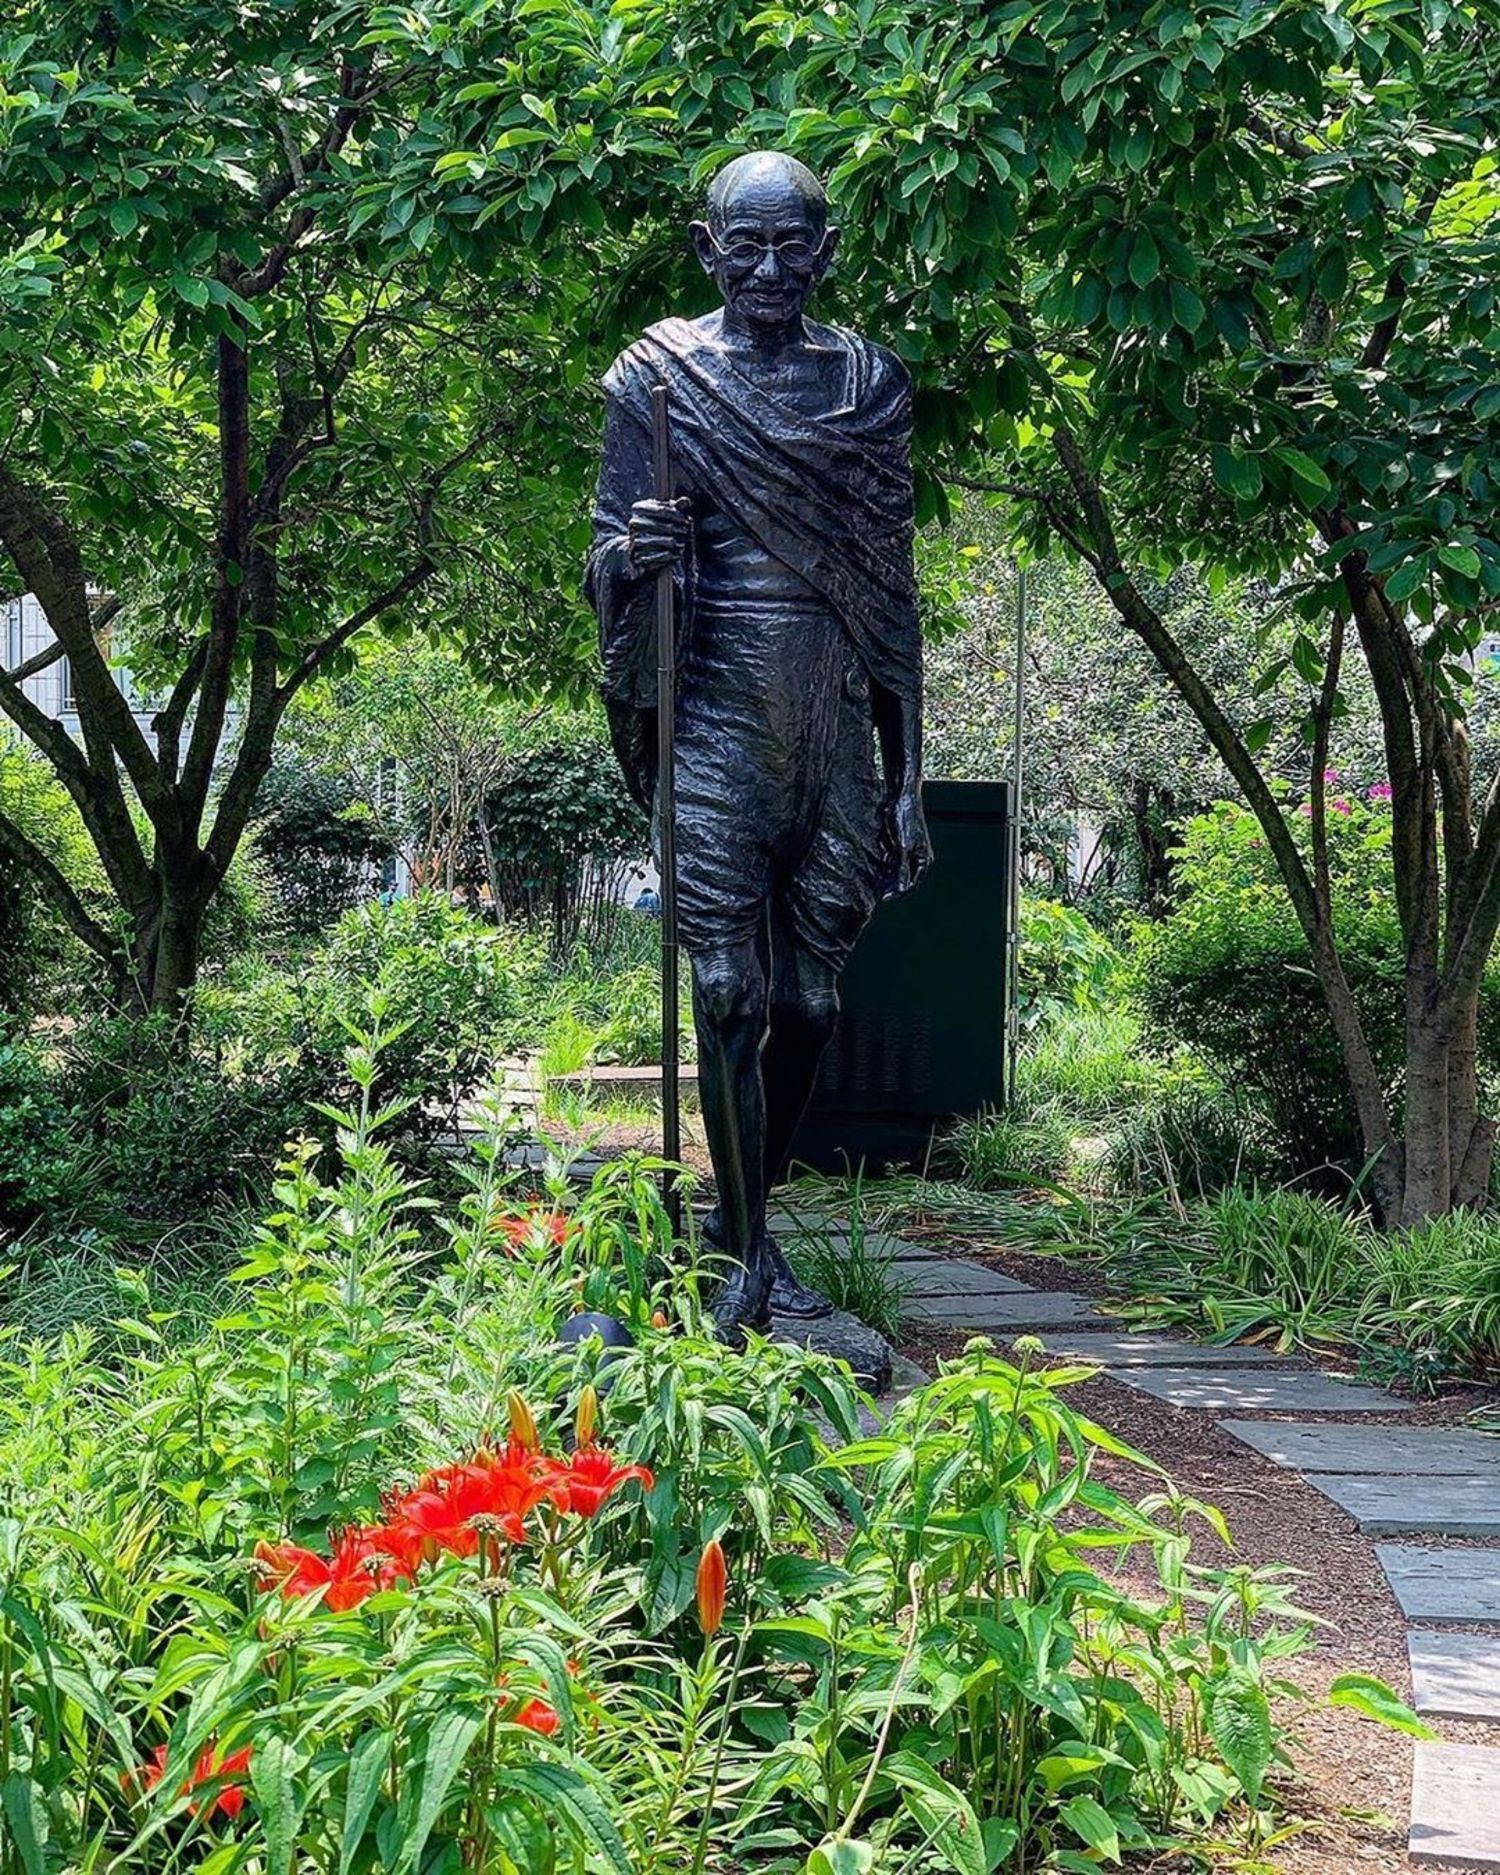 Gandhi Statue, Union Square, Manhattan.